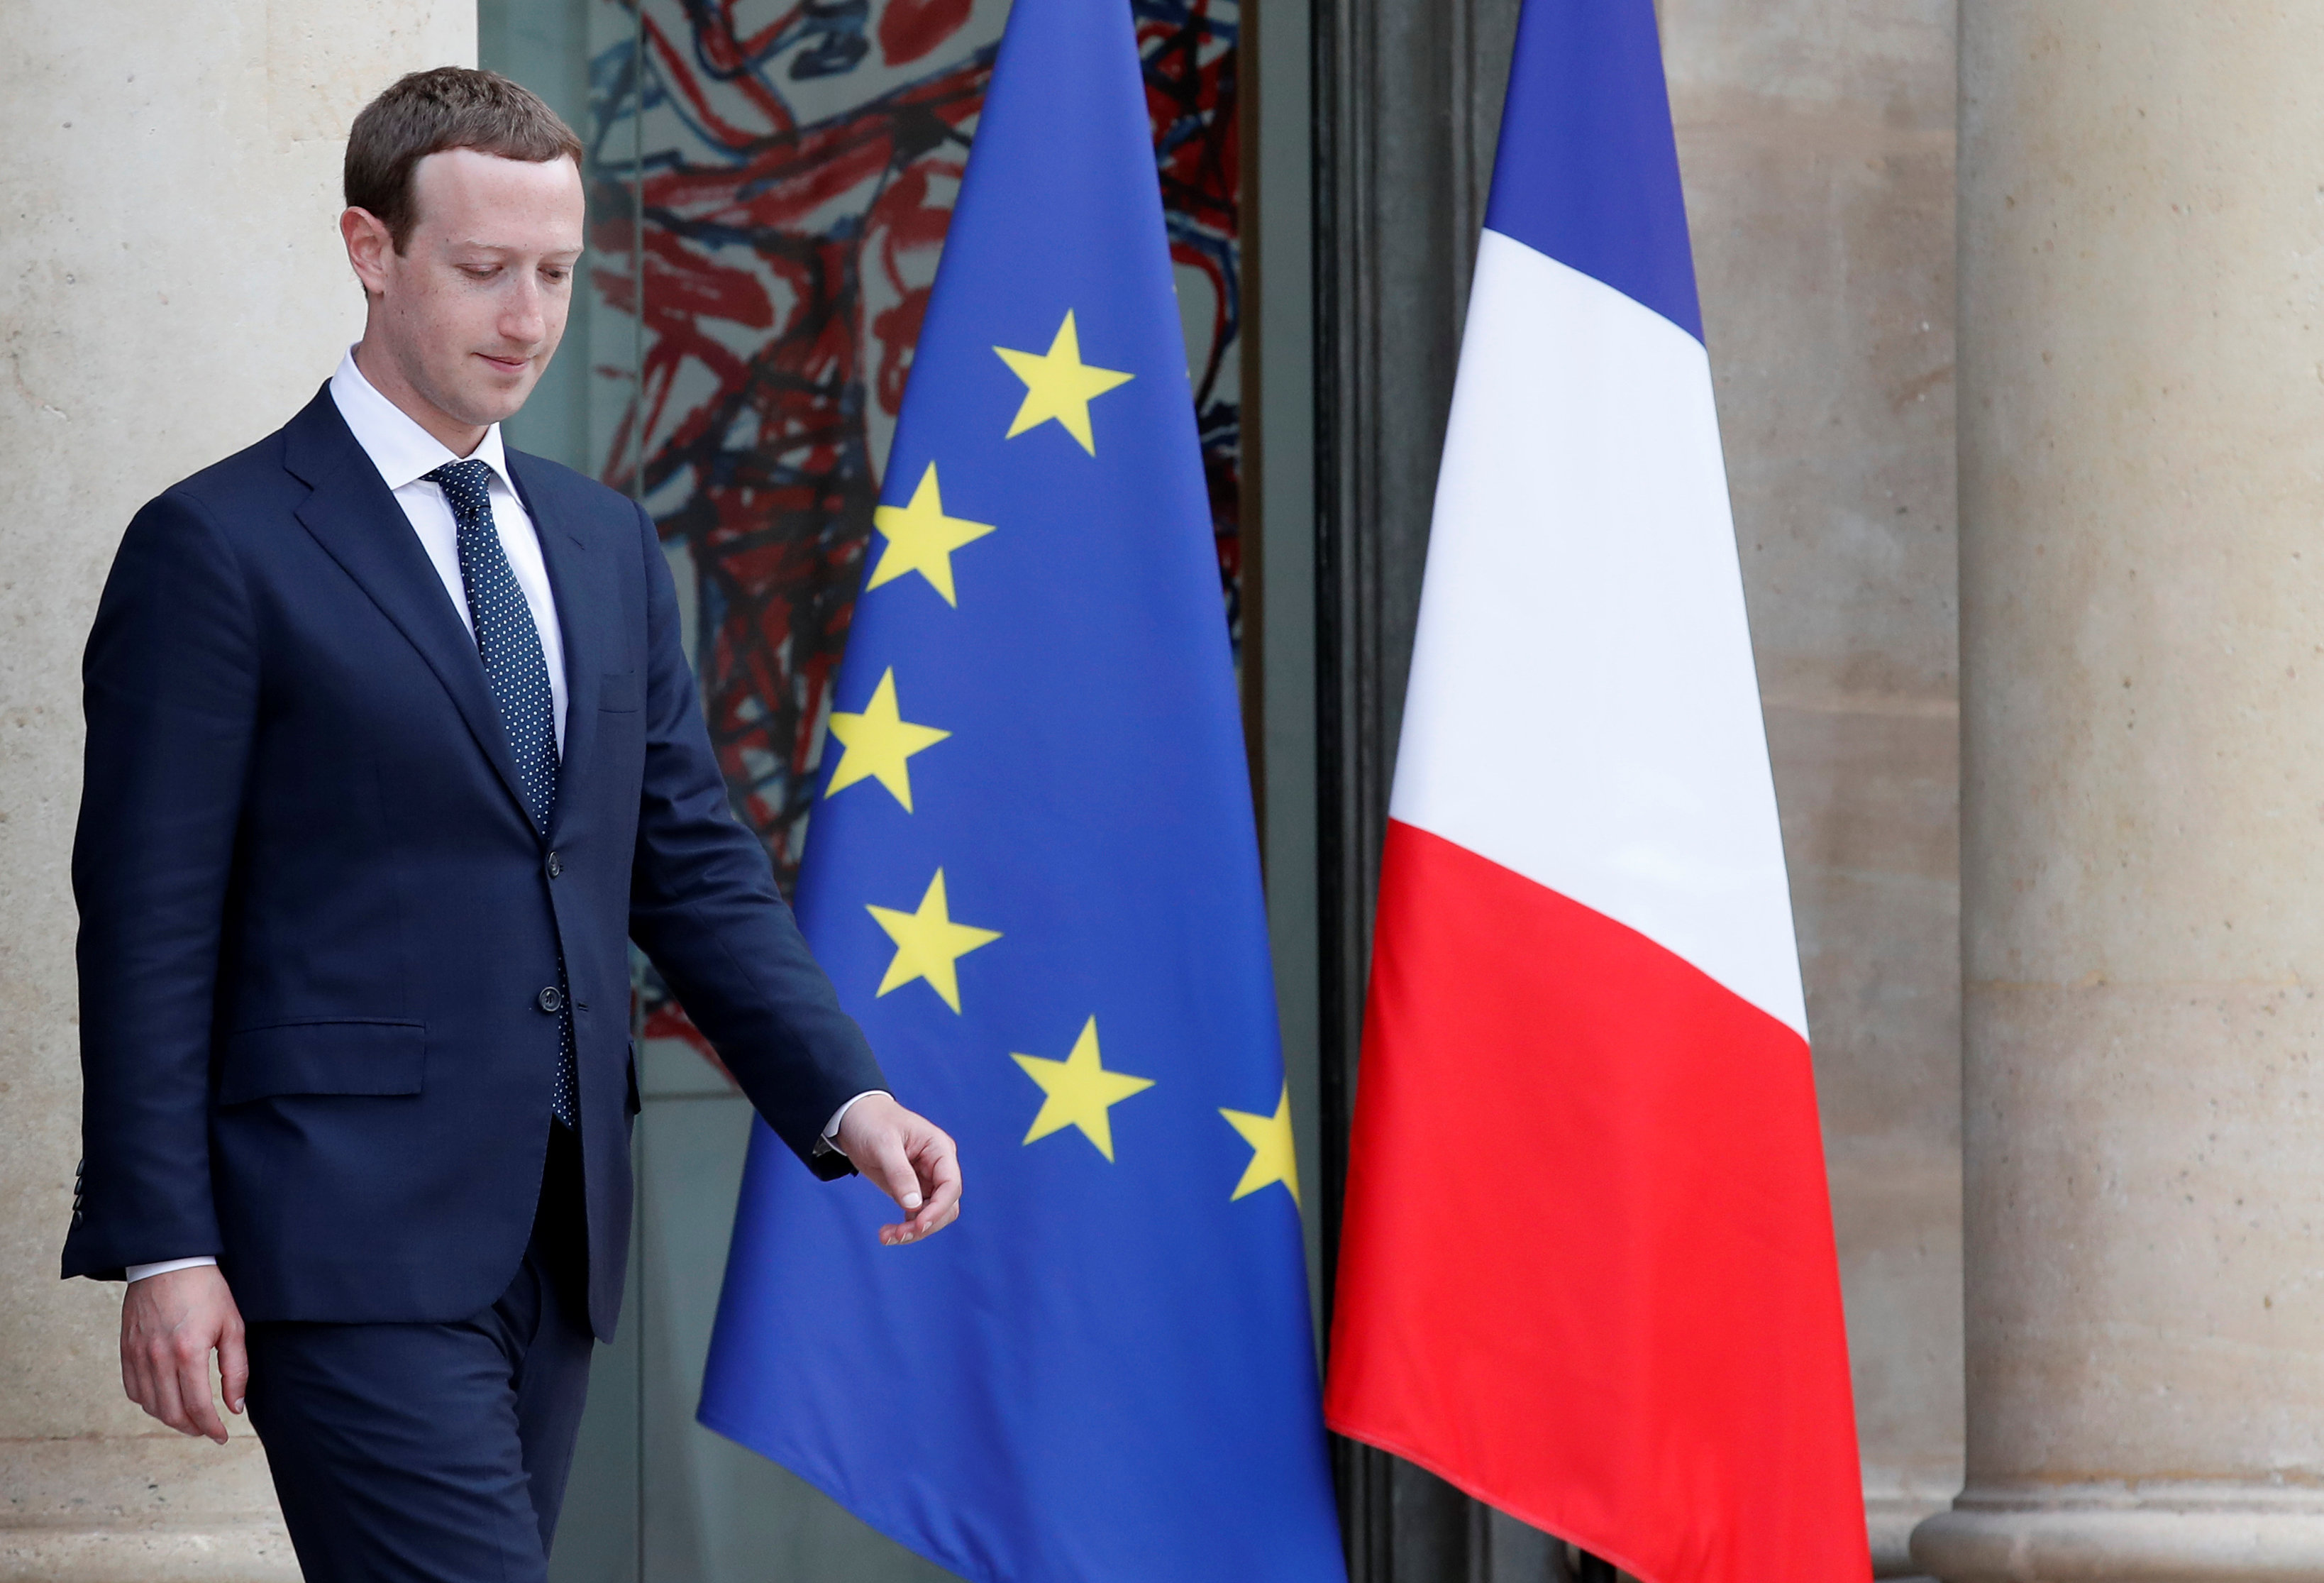 Facebook's CEO Mark Zuckerberg leaves after a meeting with French President at the Elysee Palace in Paris